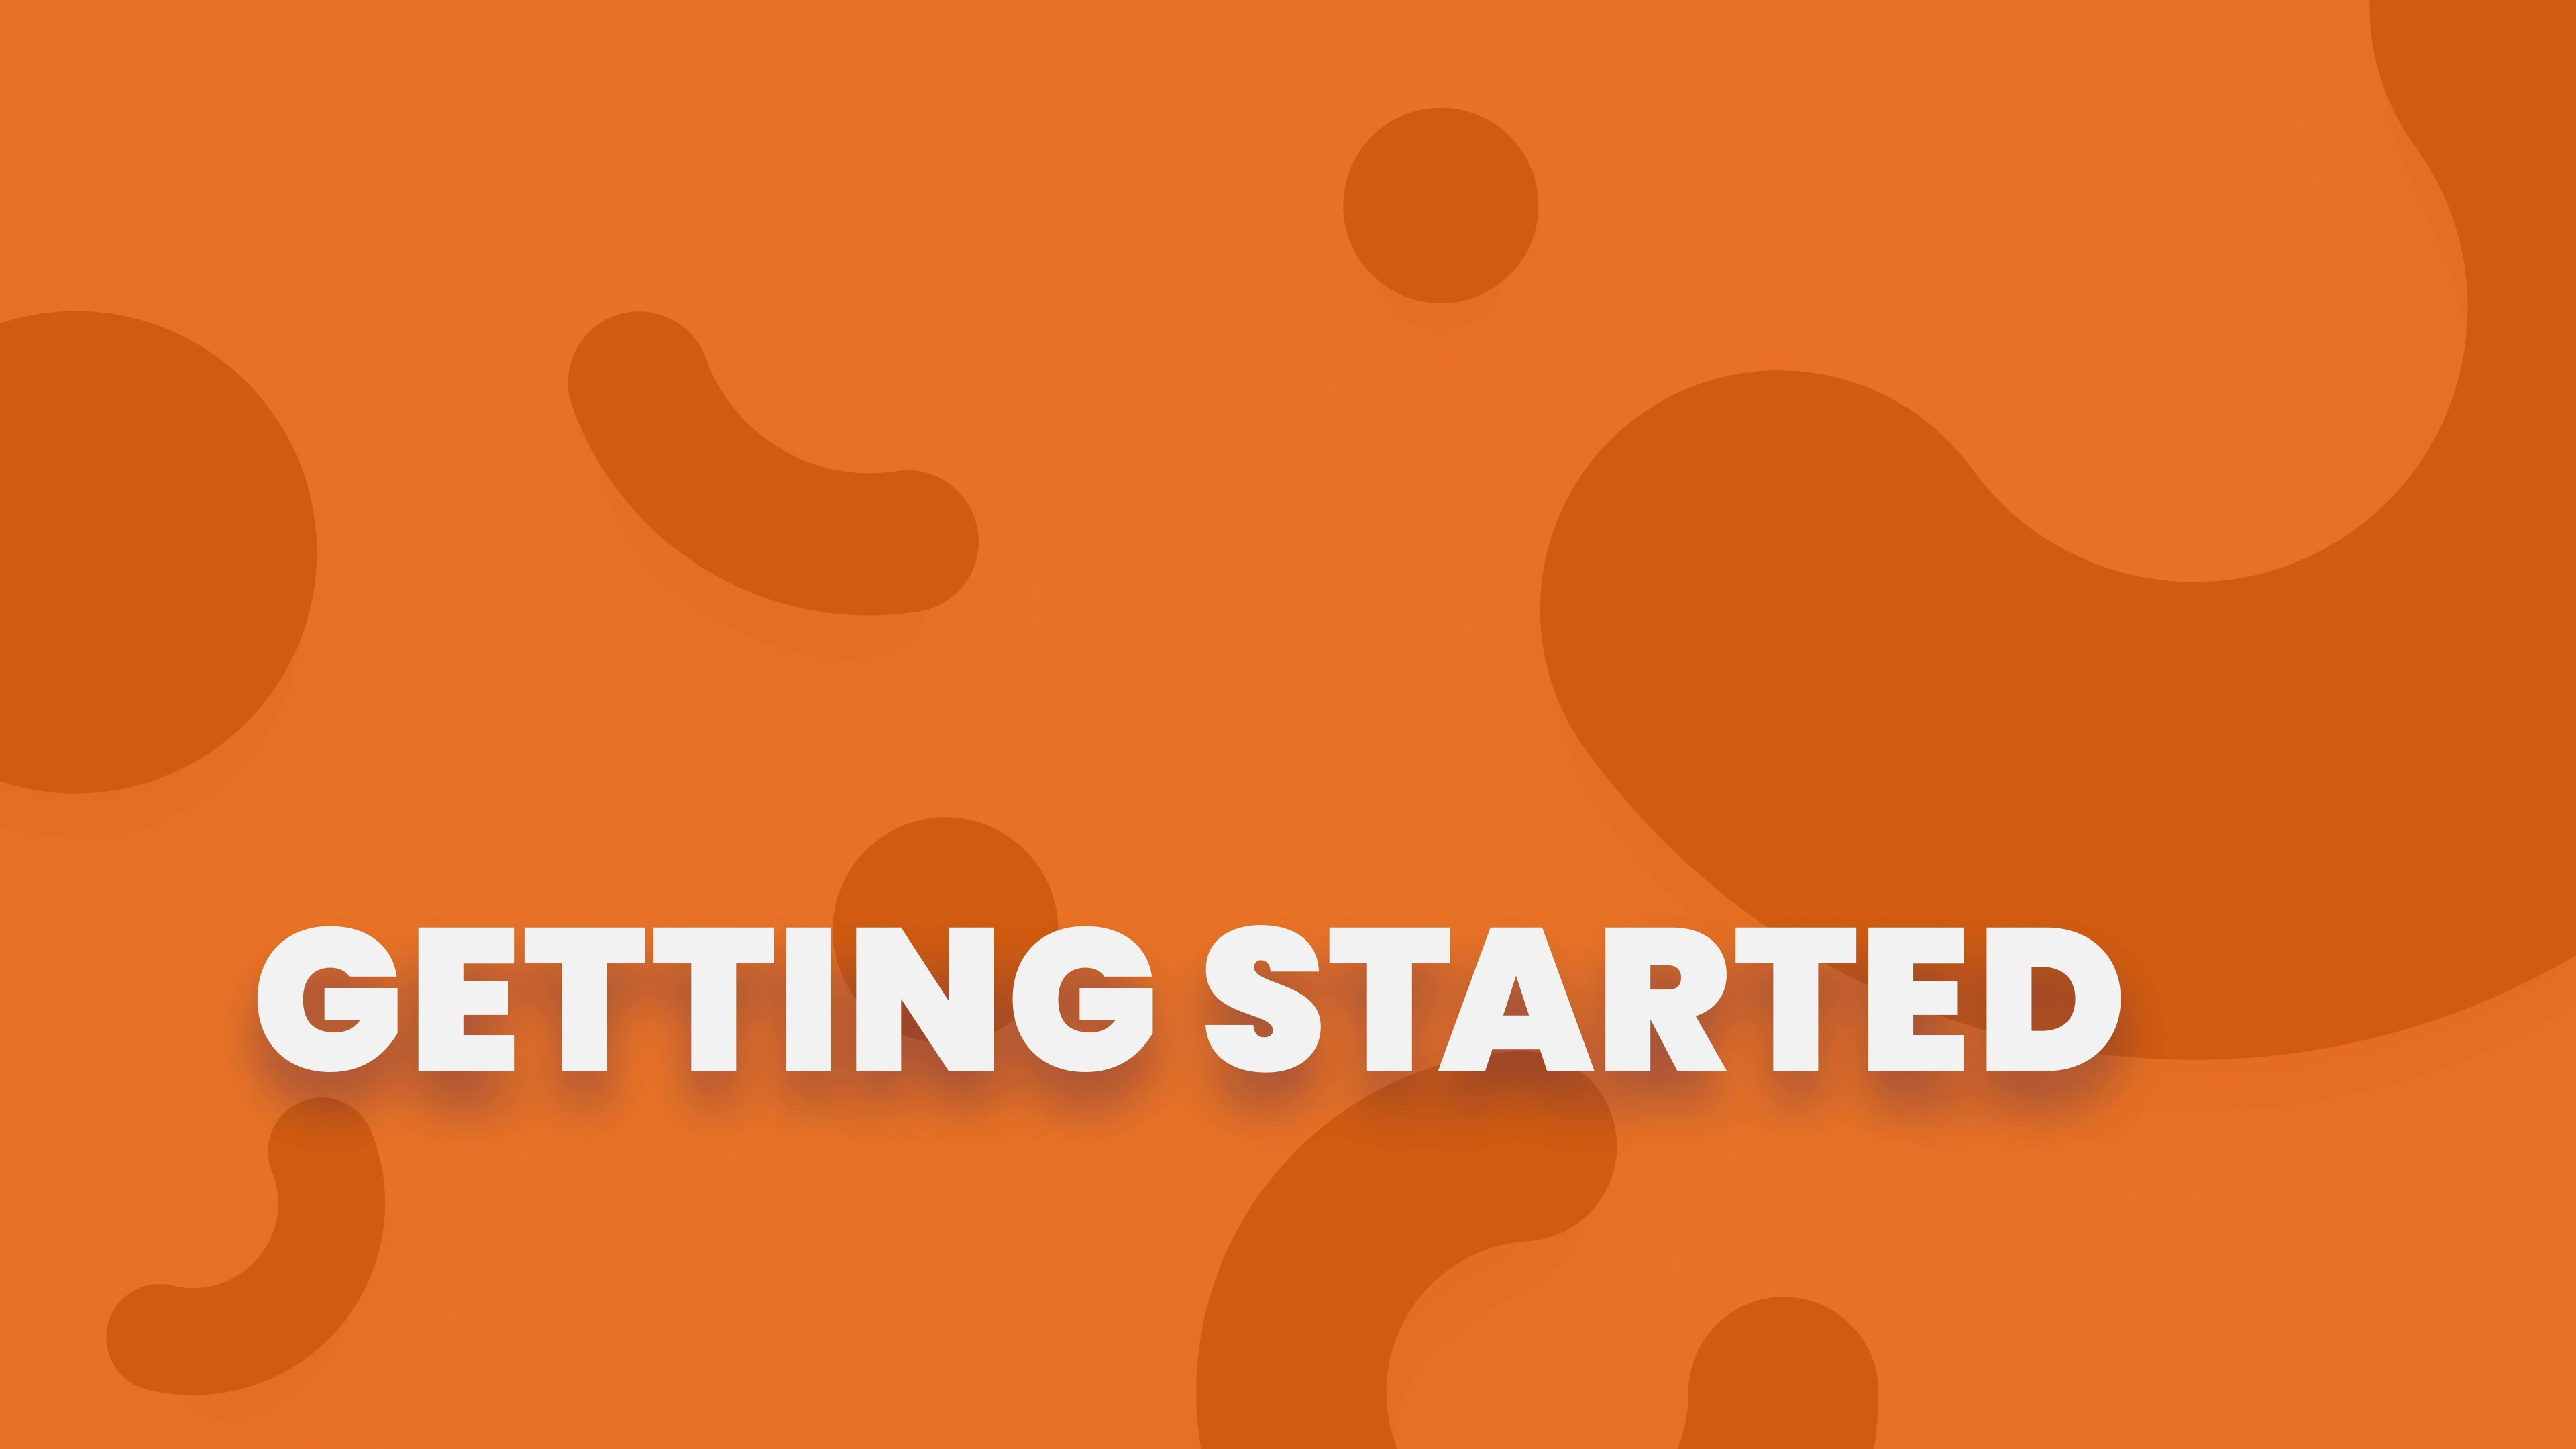 Getting Started-1